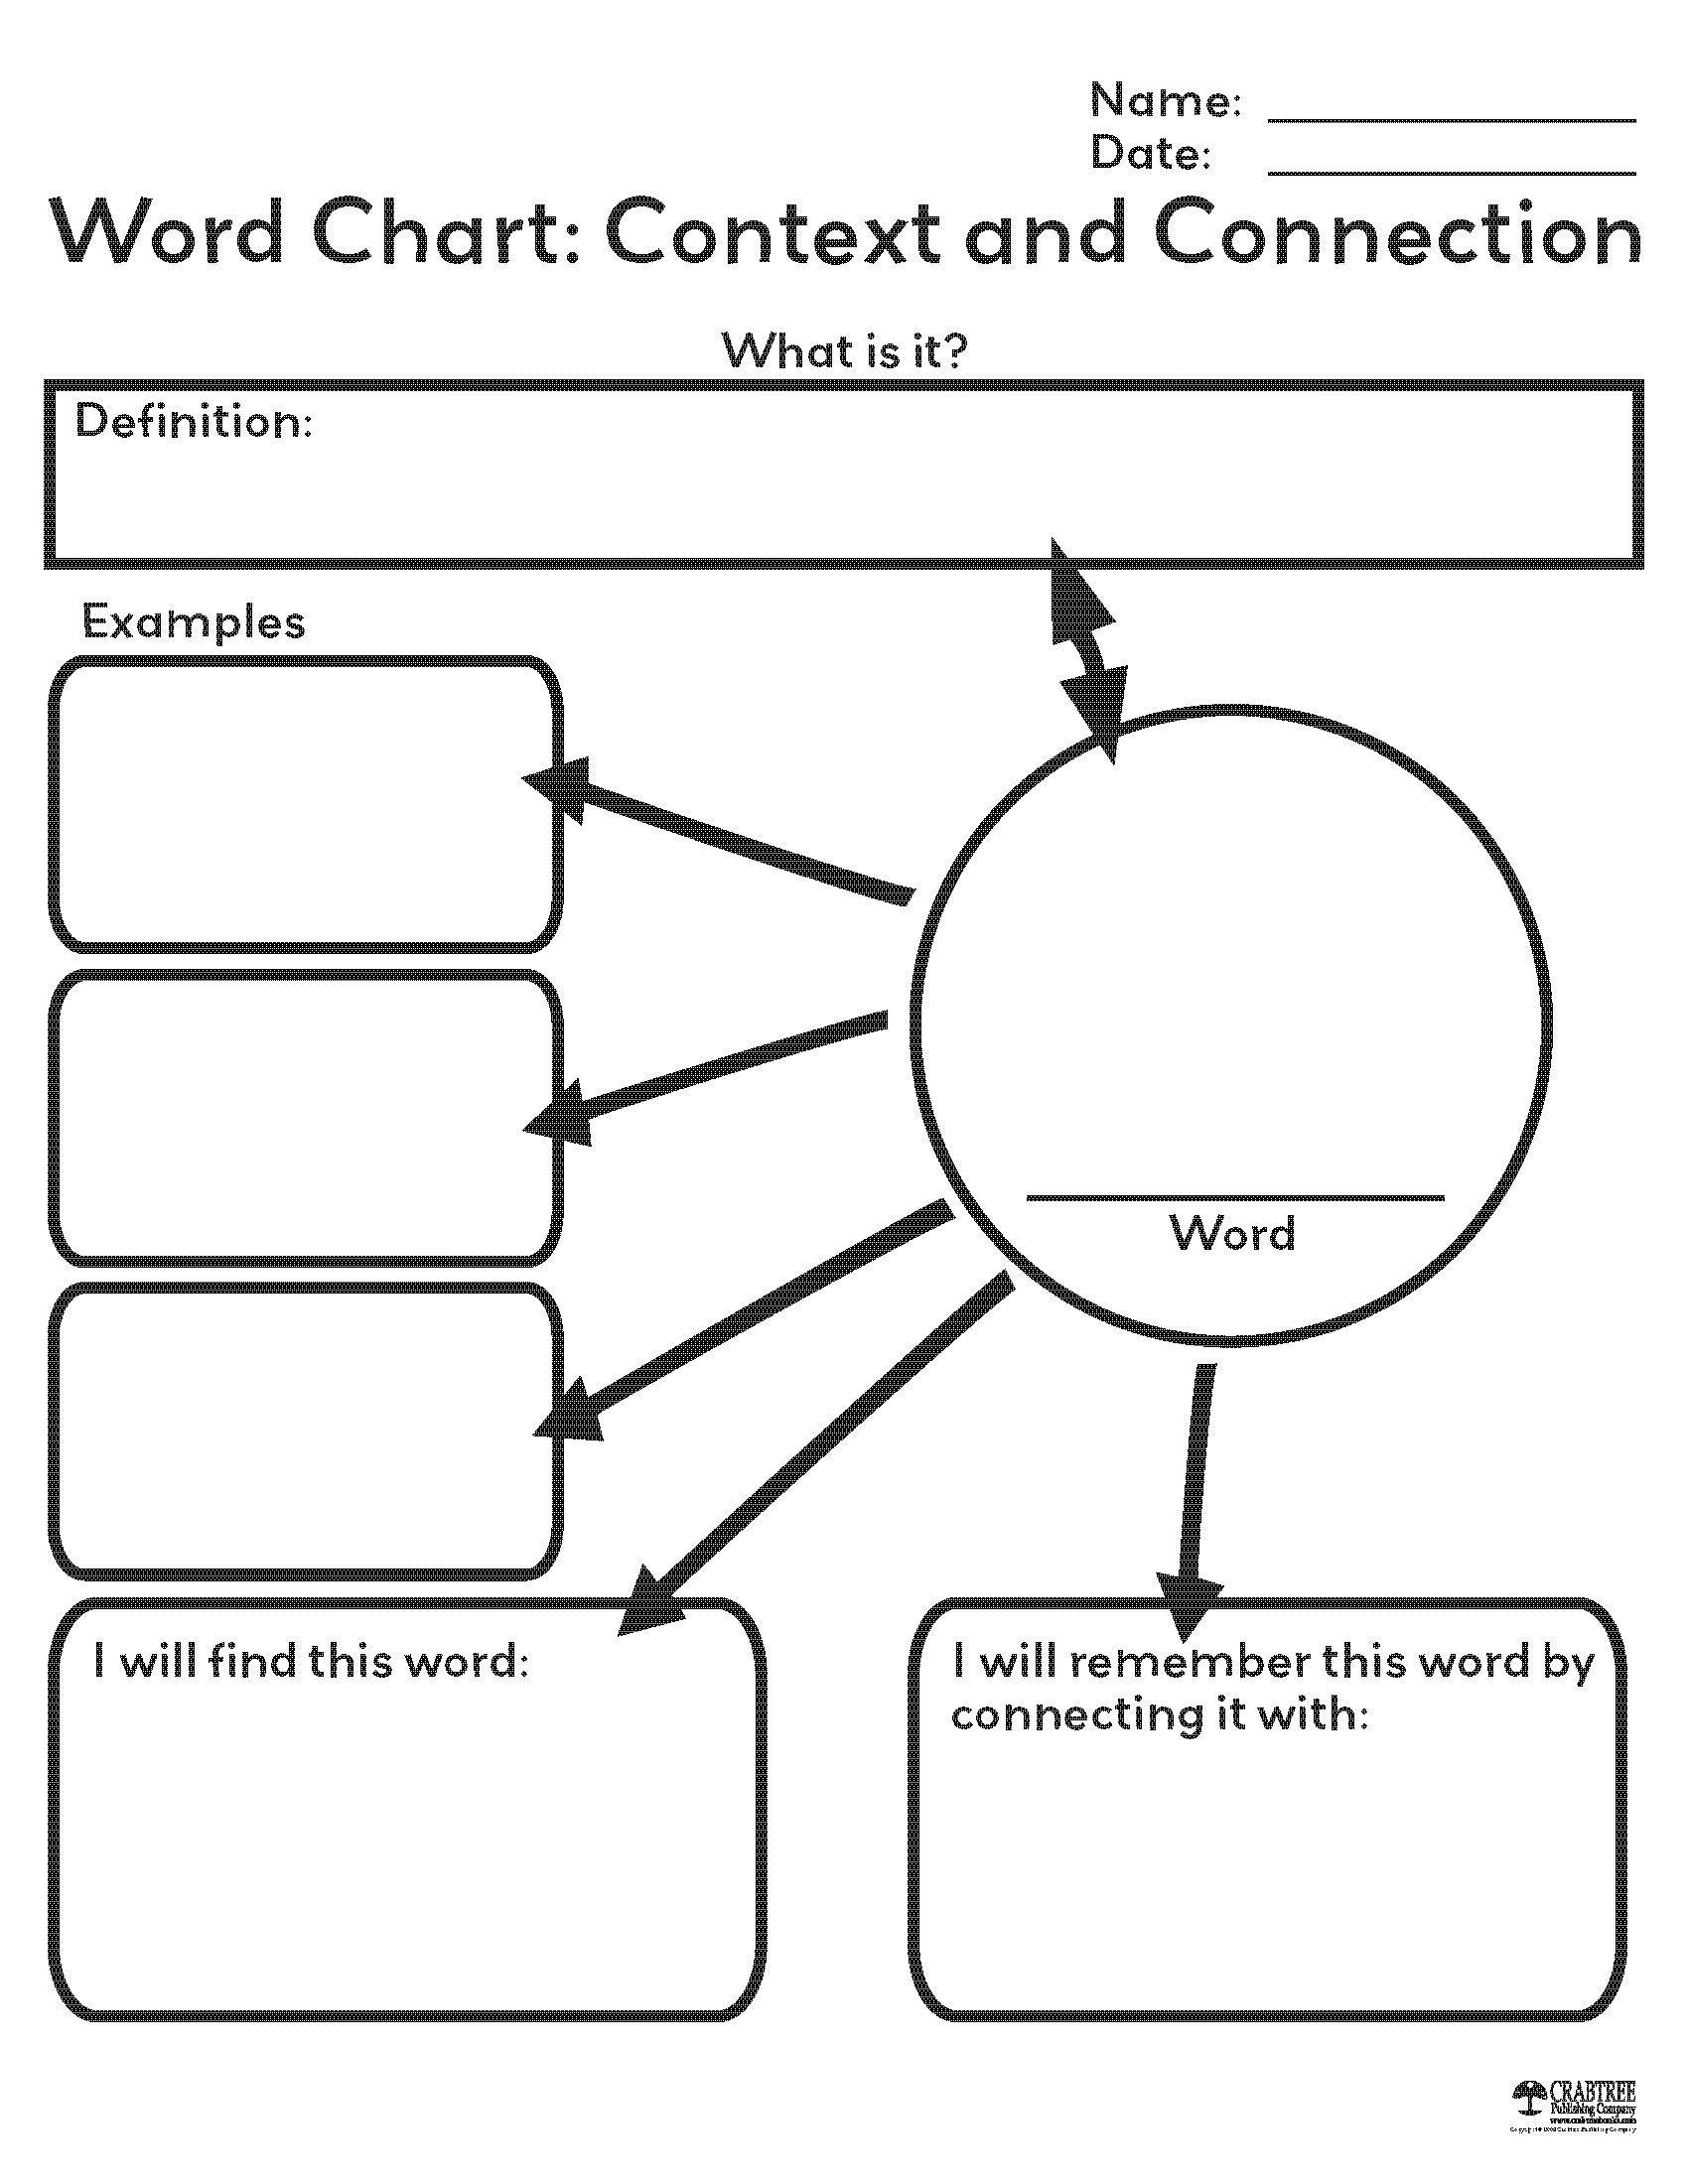 free printable graphic organizers free printable word chart from crabtree publishing 21870 | 894c008608550170e27b20d14fce2b19